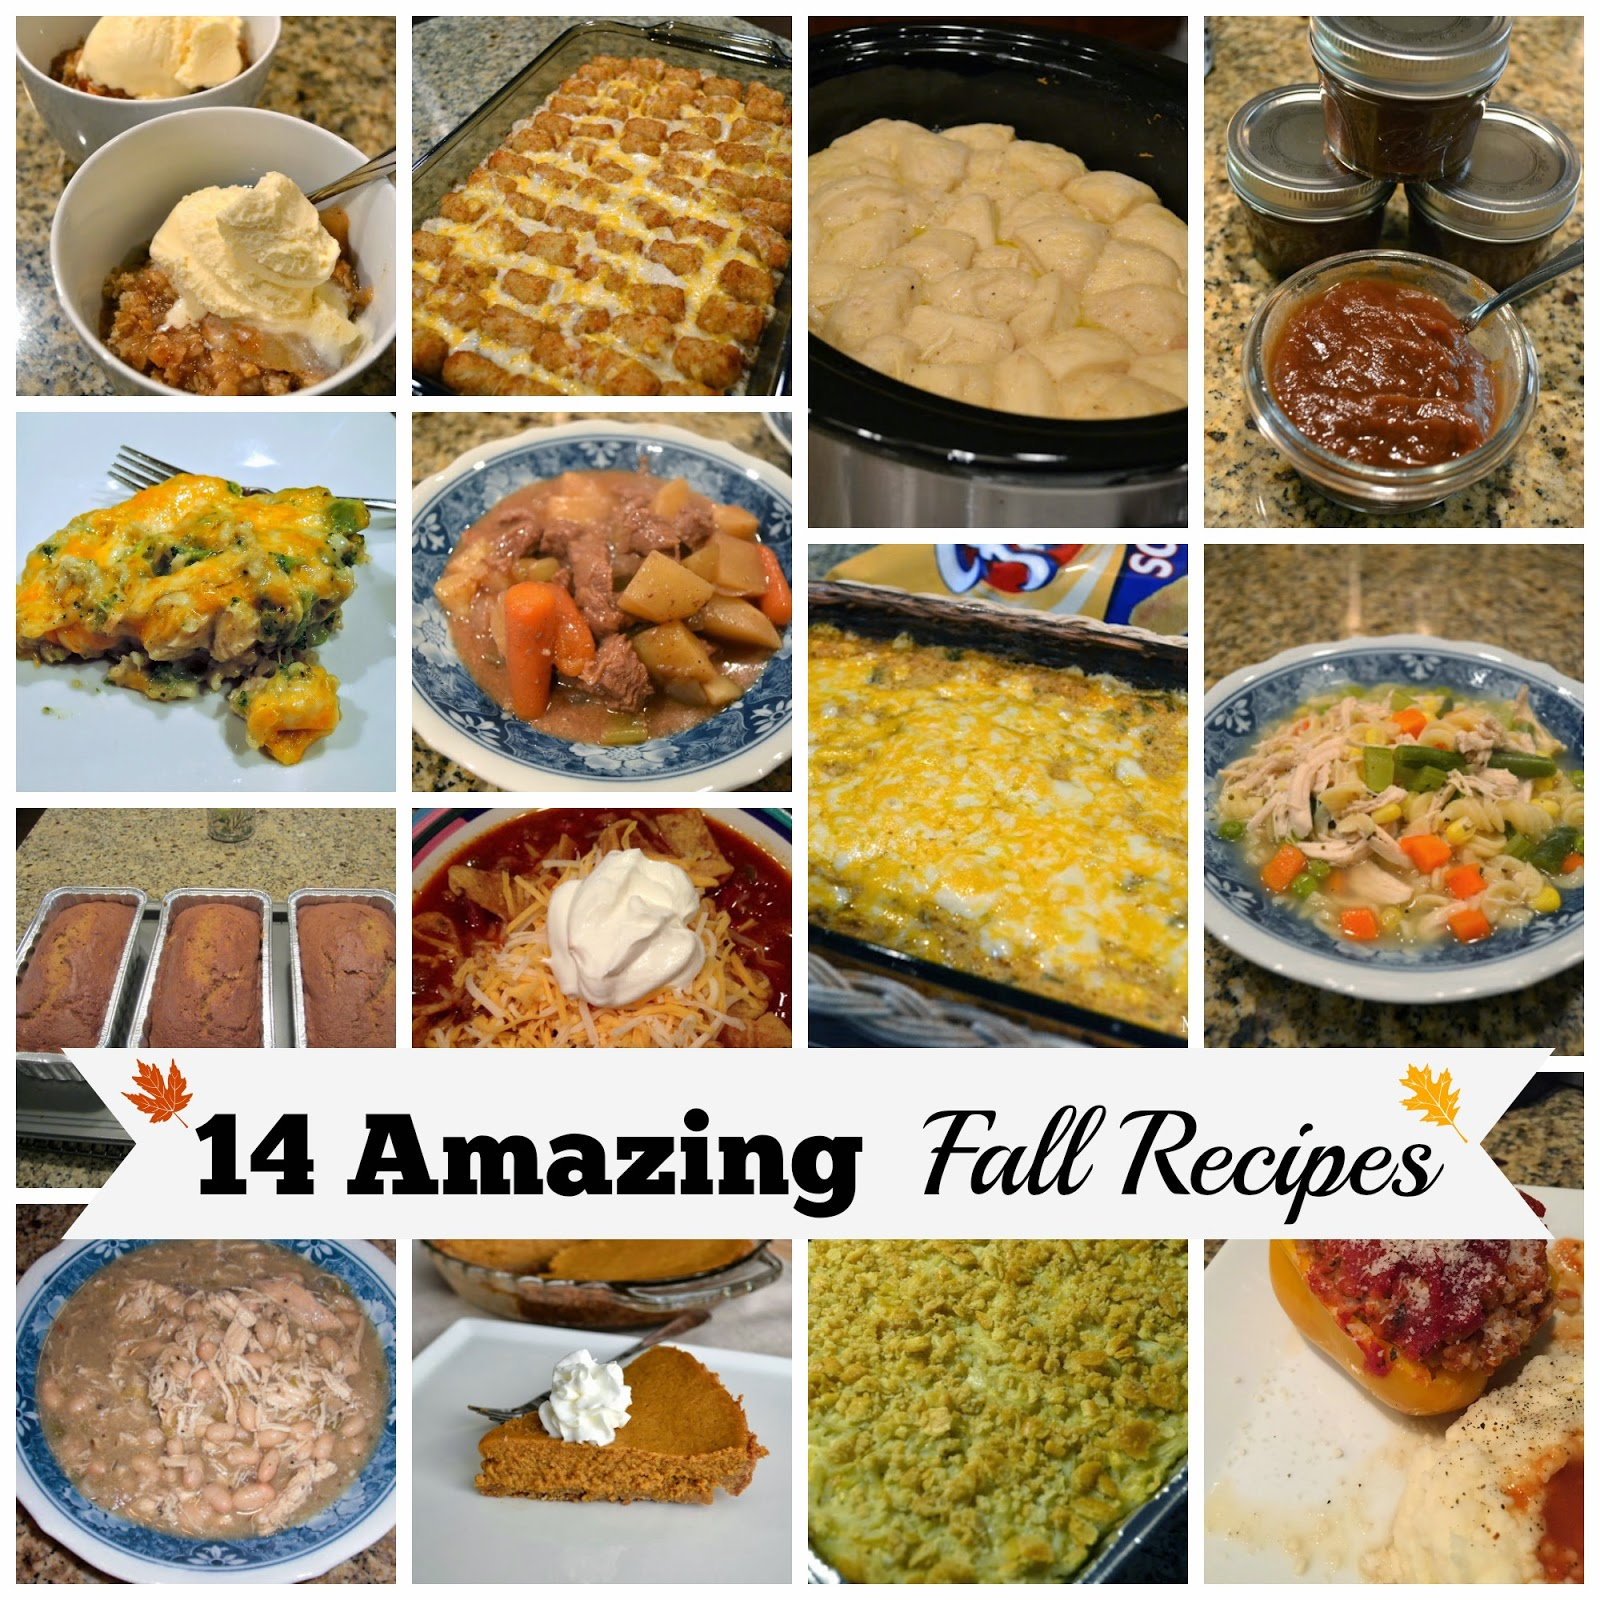 14 Amazing Fall Recipes